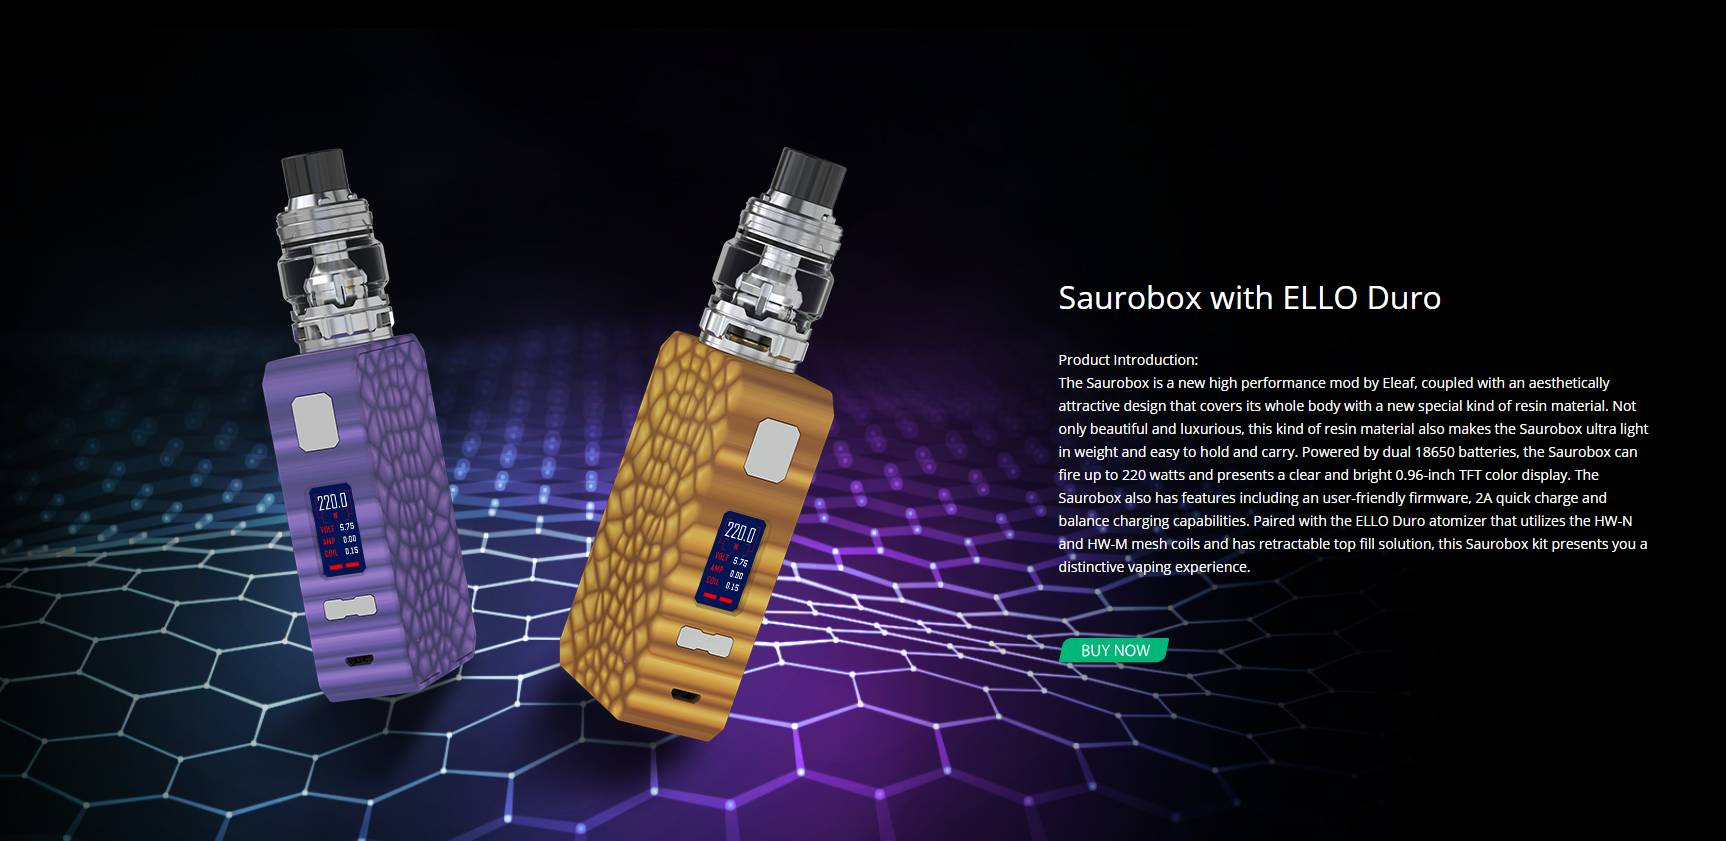 Eleaf Saurobox 220W with ELLO Duro Starter Kit